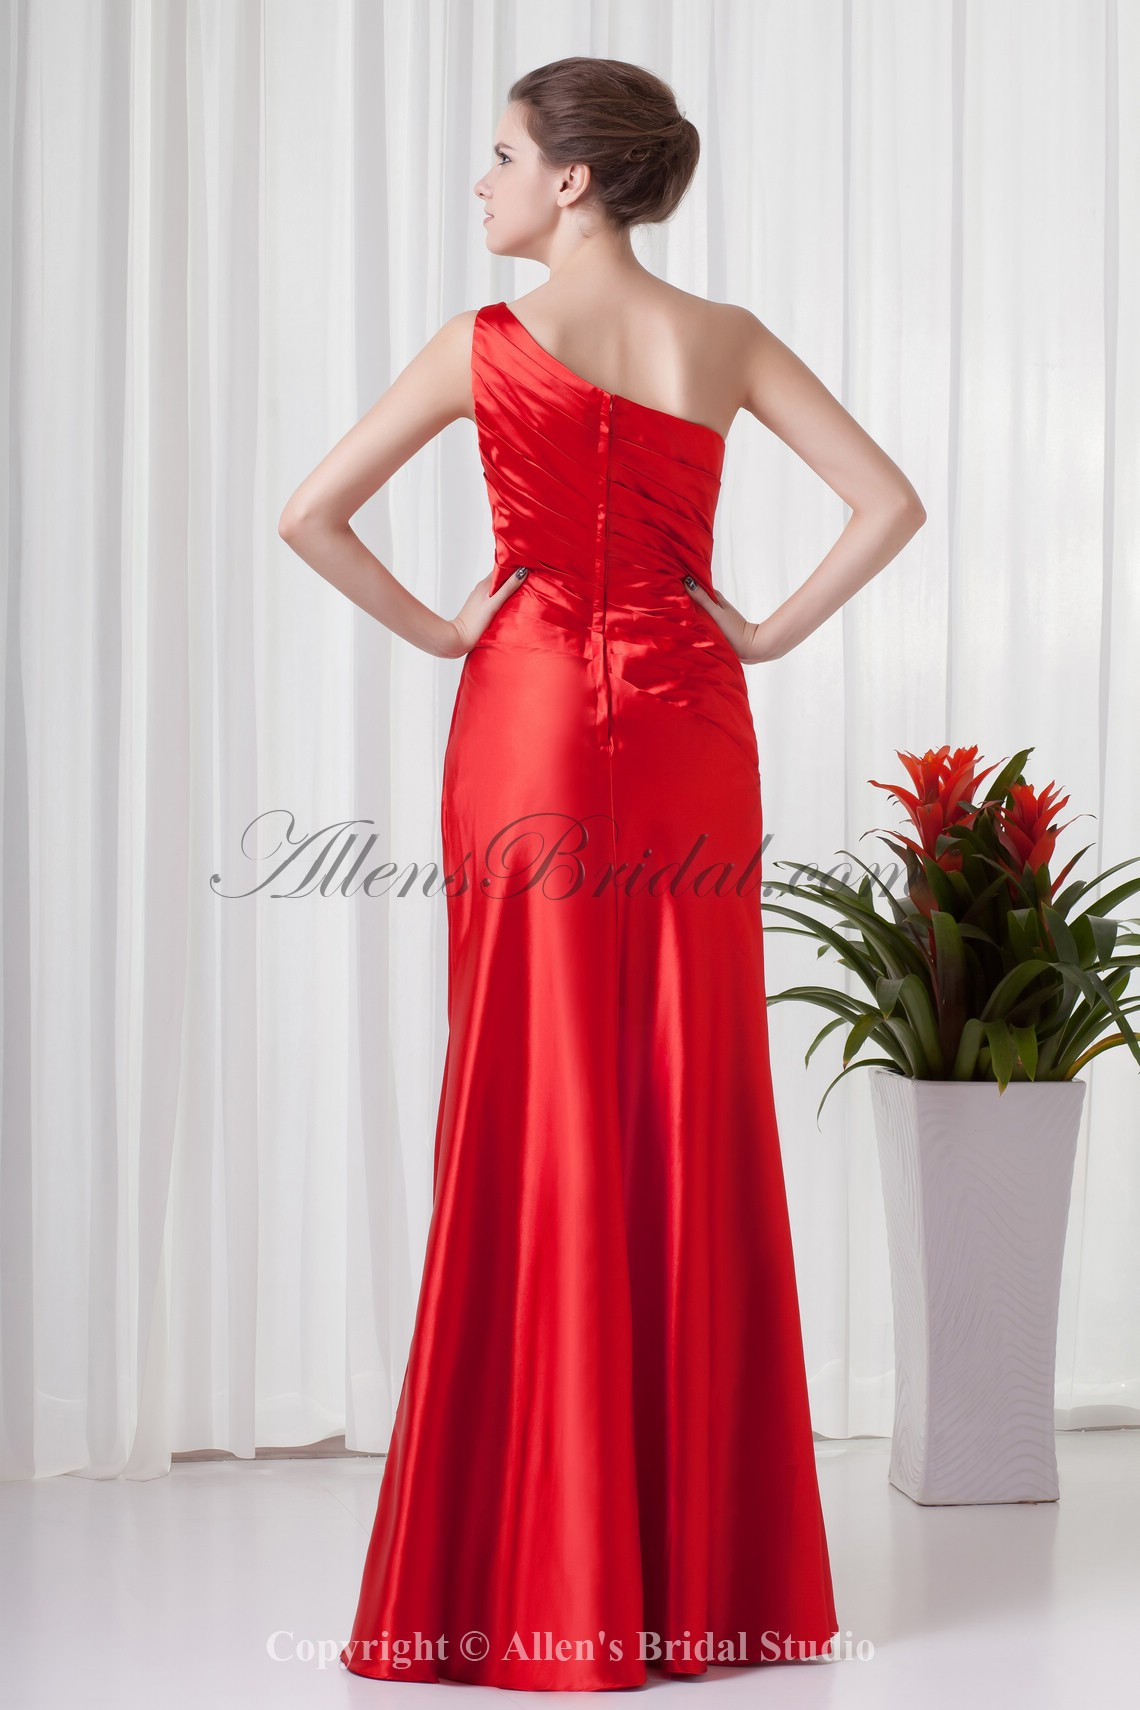 /307-2454/satin-one-shoulder-neckline-sheath-floor-length-ruched-prom-dress.jpg